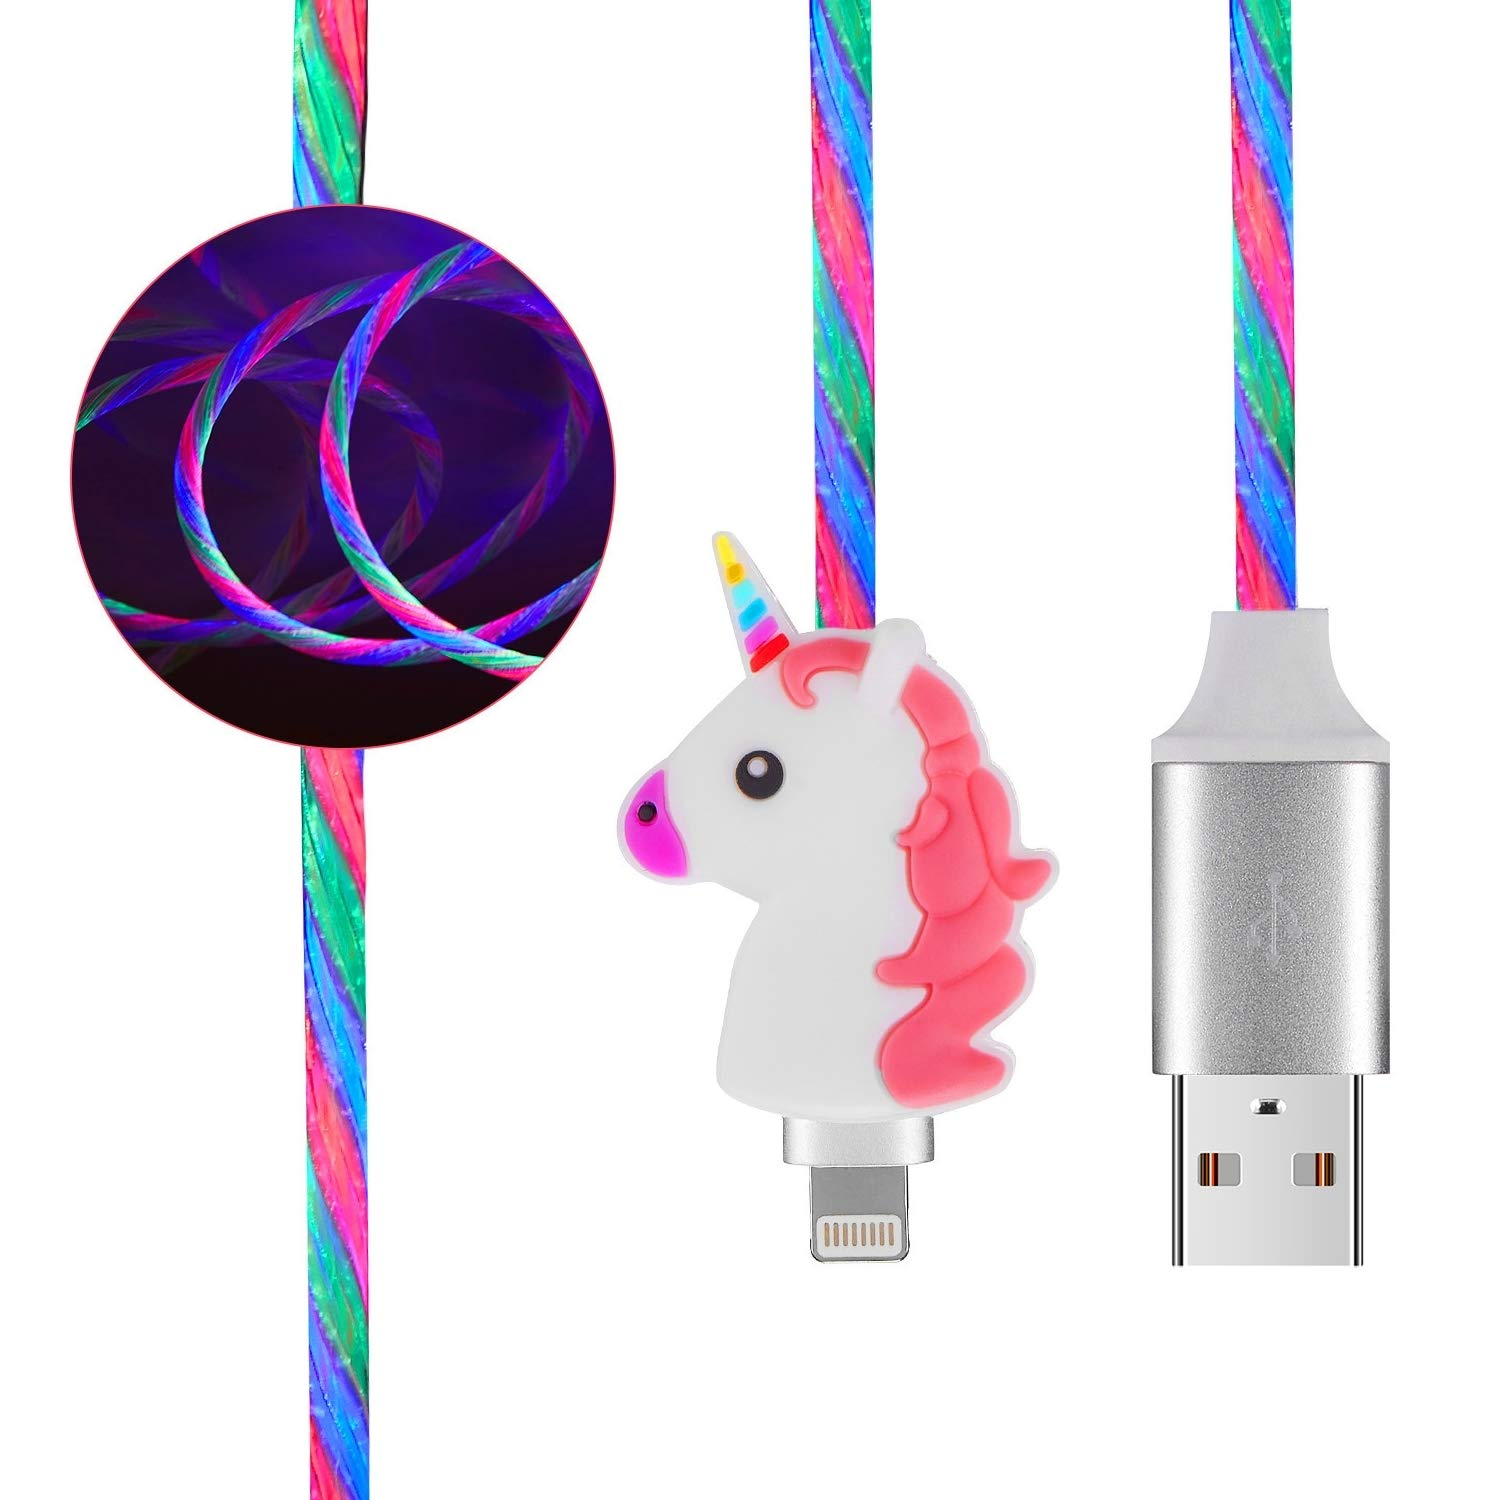 Mulafnxal Unicorn Cable for iPhone Xs Max/X/XR / 8/7 /6 /6S Plus /5 SE,Cute Animal Cartoon 3D LED Charging Cable for iPad 2/3/4/Mini/Air/Pro Funny Kawaii Fast USB Luminous Cord for Kids Girls(iOS)